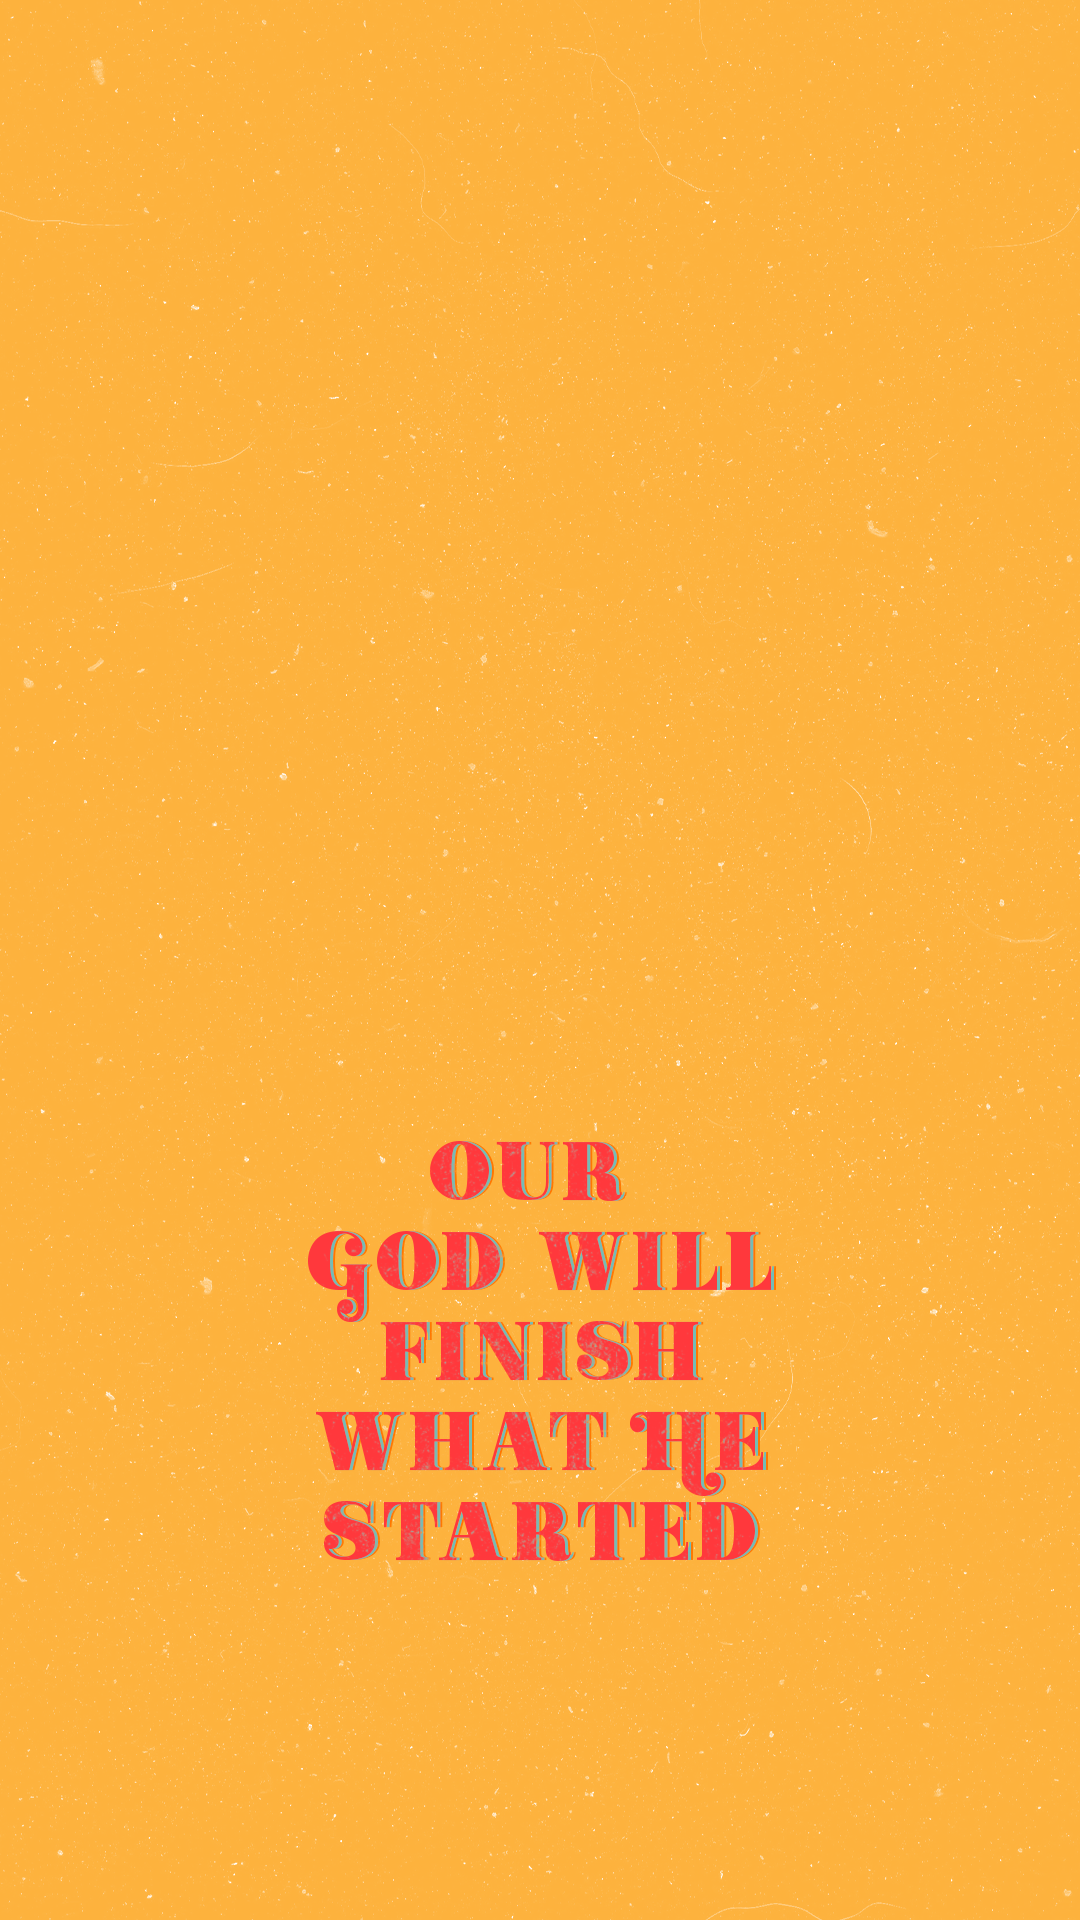 Our God Christian iphone wallpaper aesthetic yellow